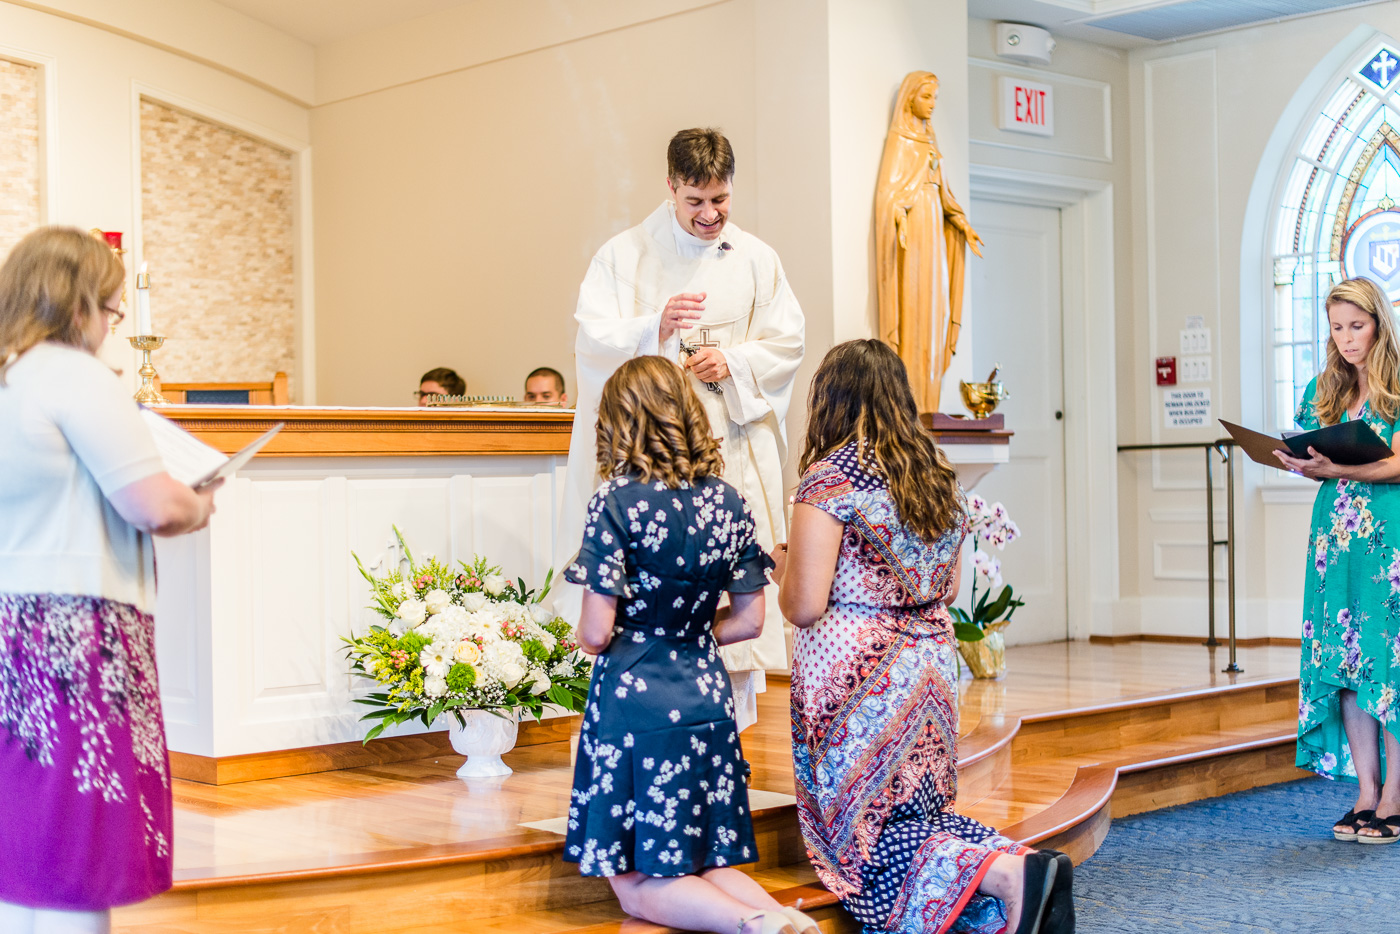 Emily-Annette-Photography-Catholic-Consecrated-Commitment-Mass-Event-Diocese-Arlington-Fairfax-Photographer-Youth-Apostles-August-2018-10.jpg